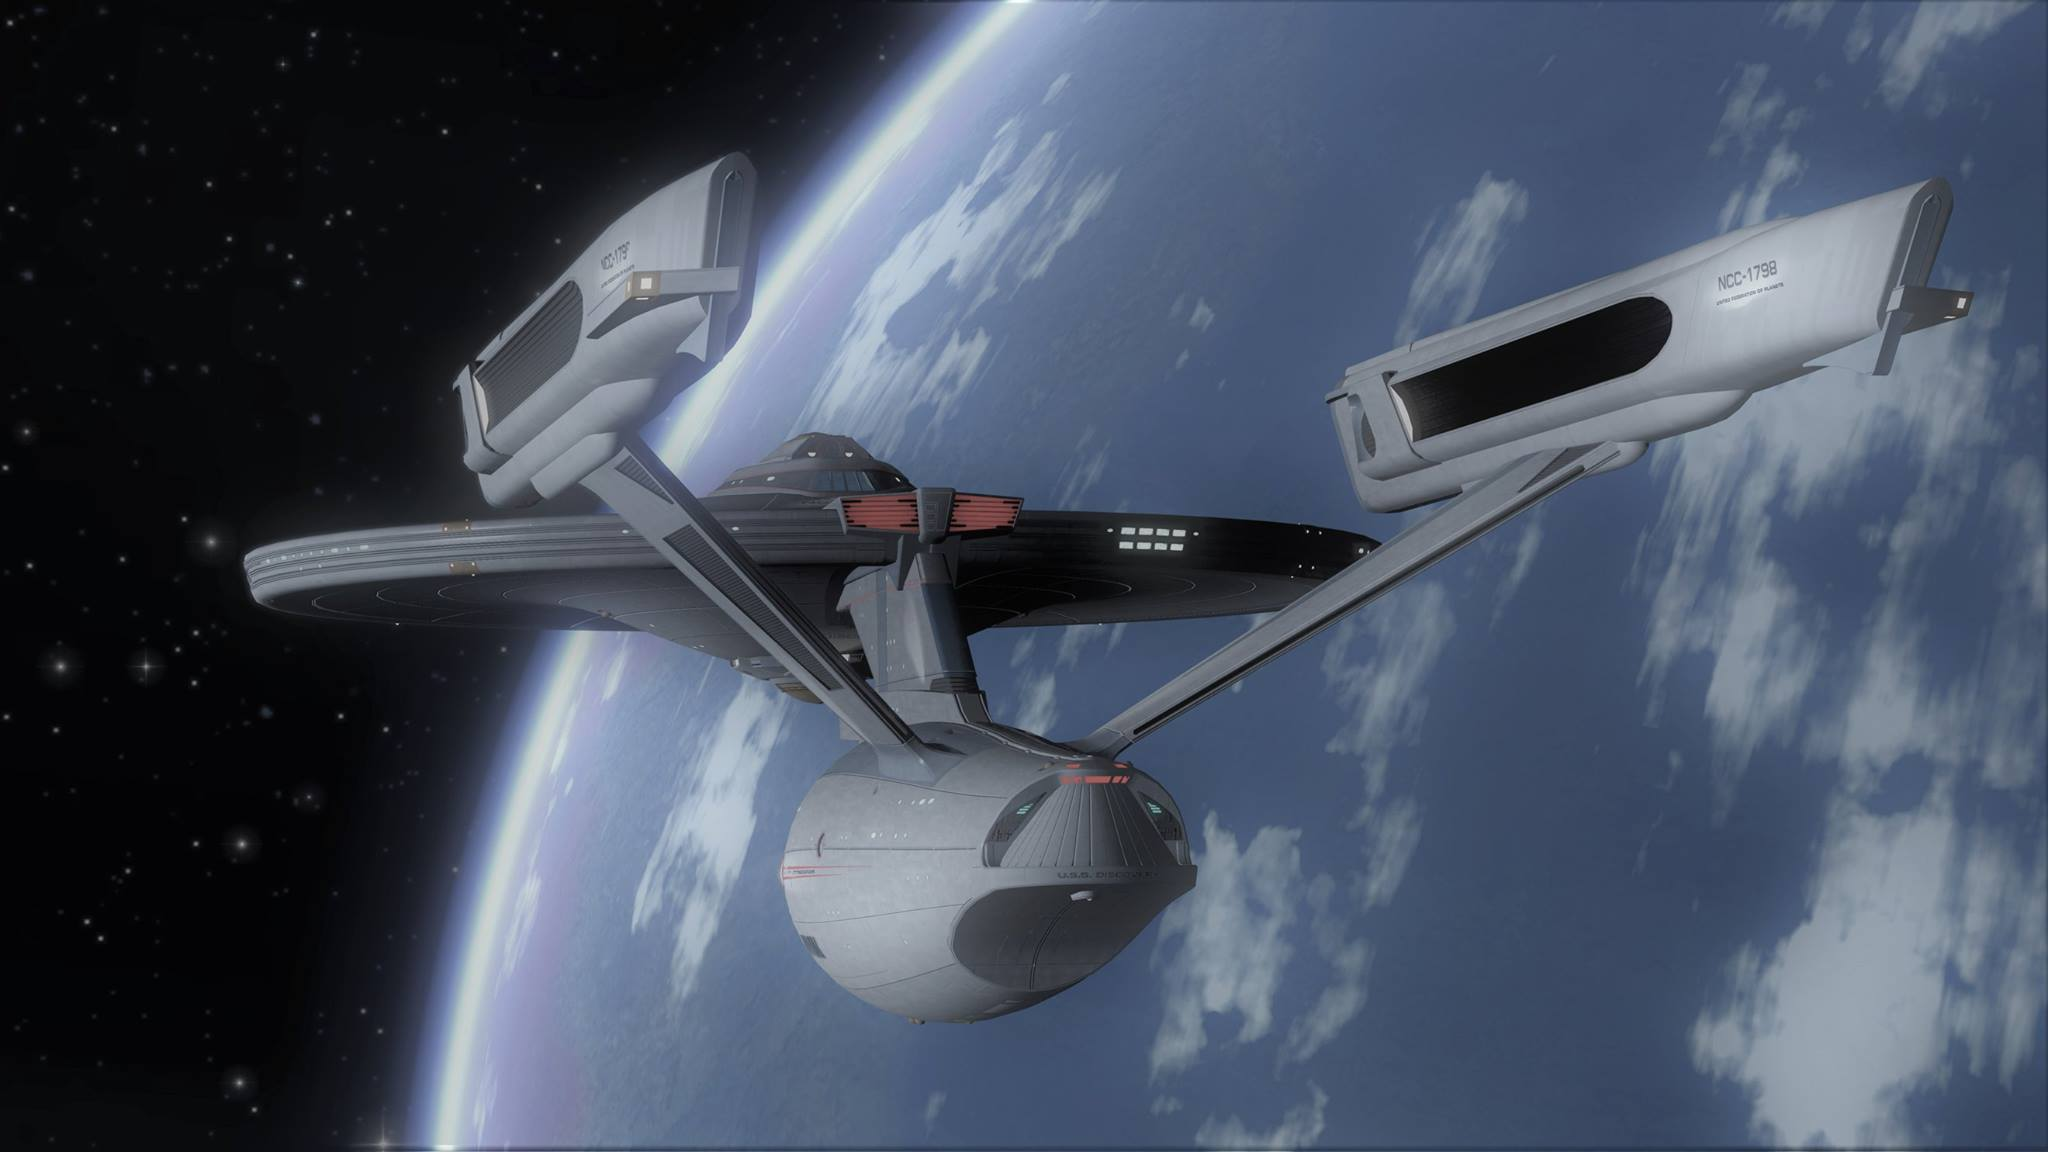 Uss-Discovery (3)